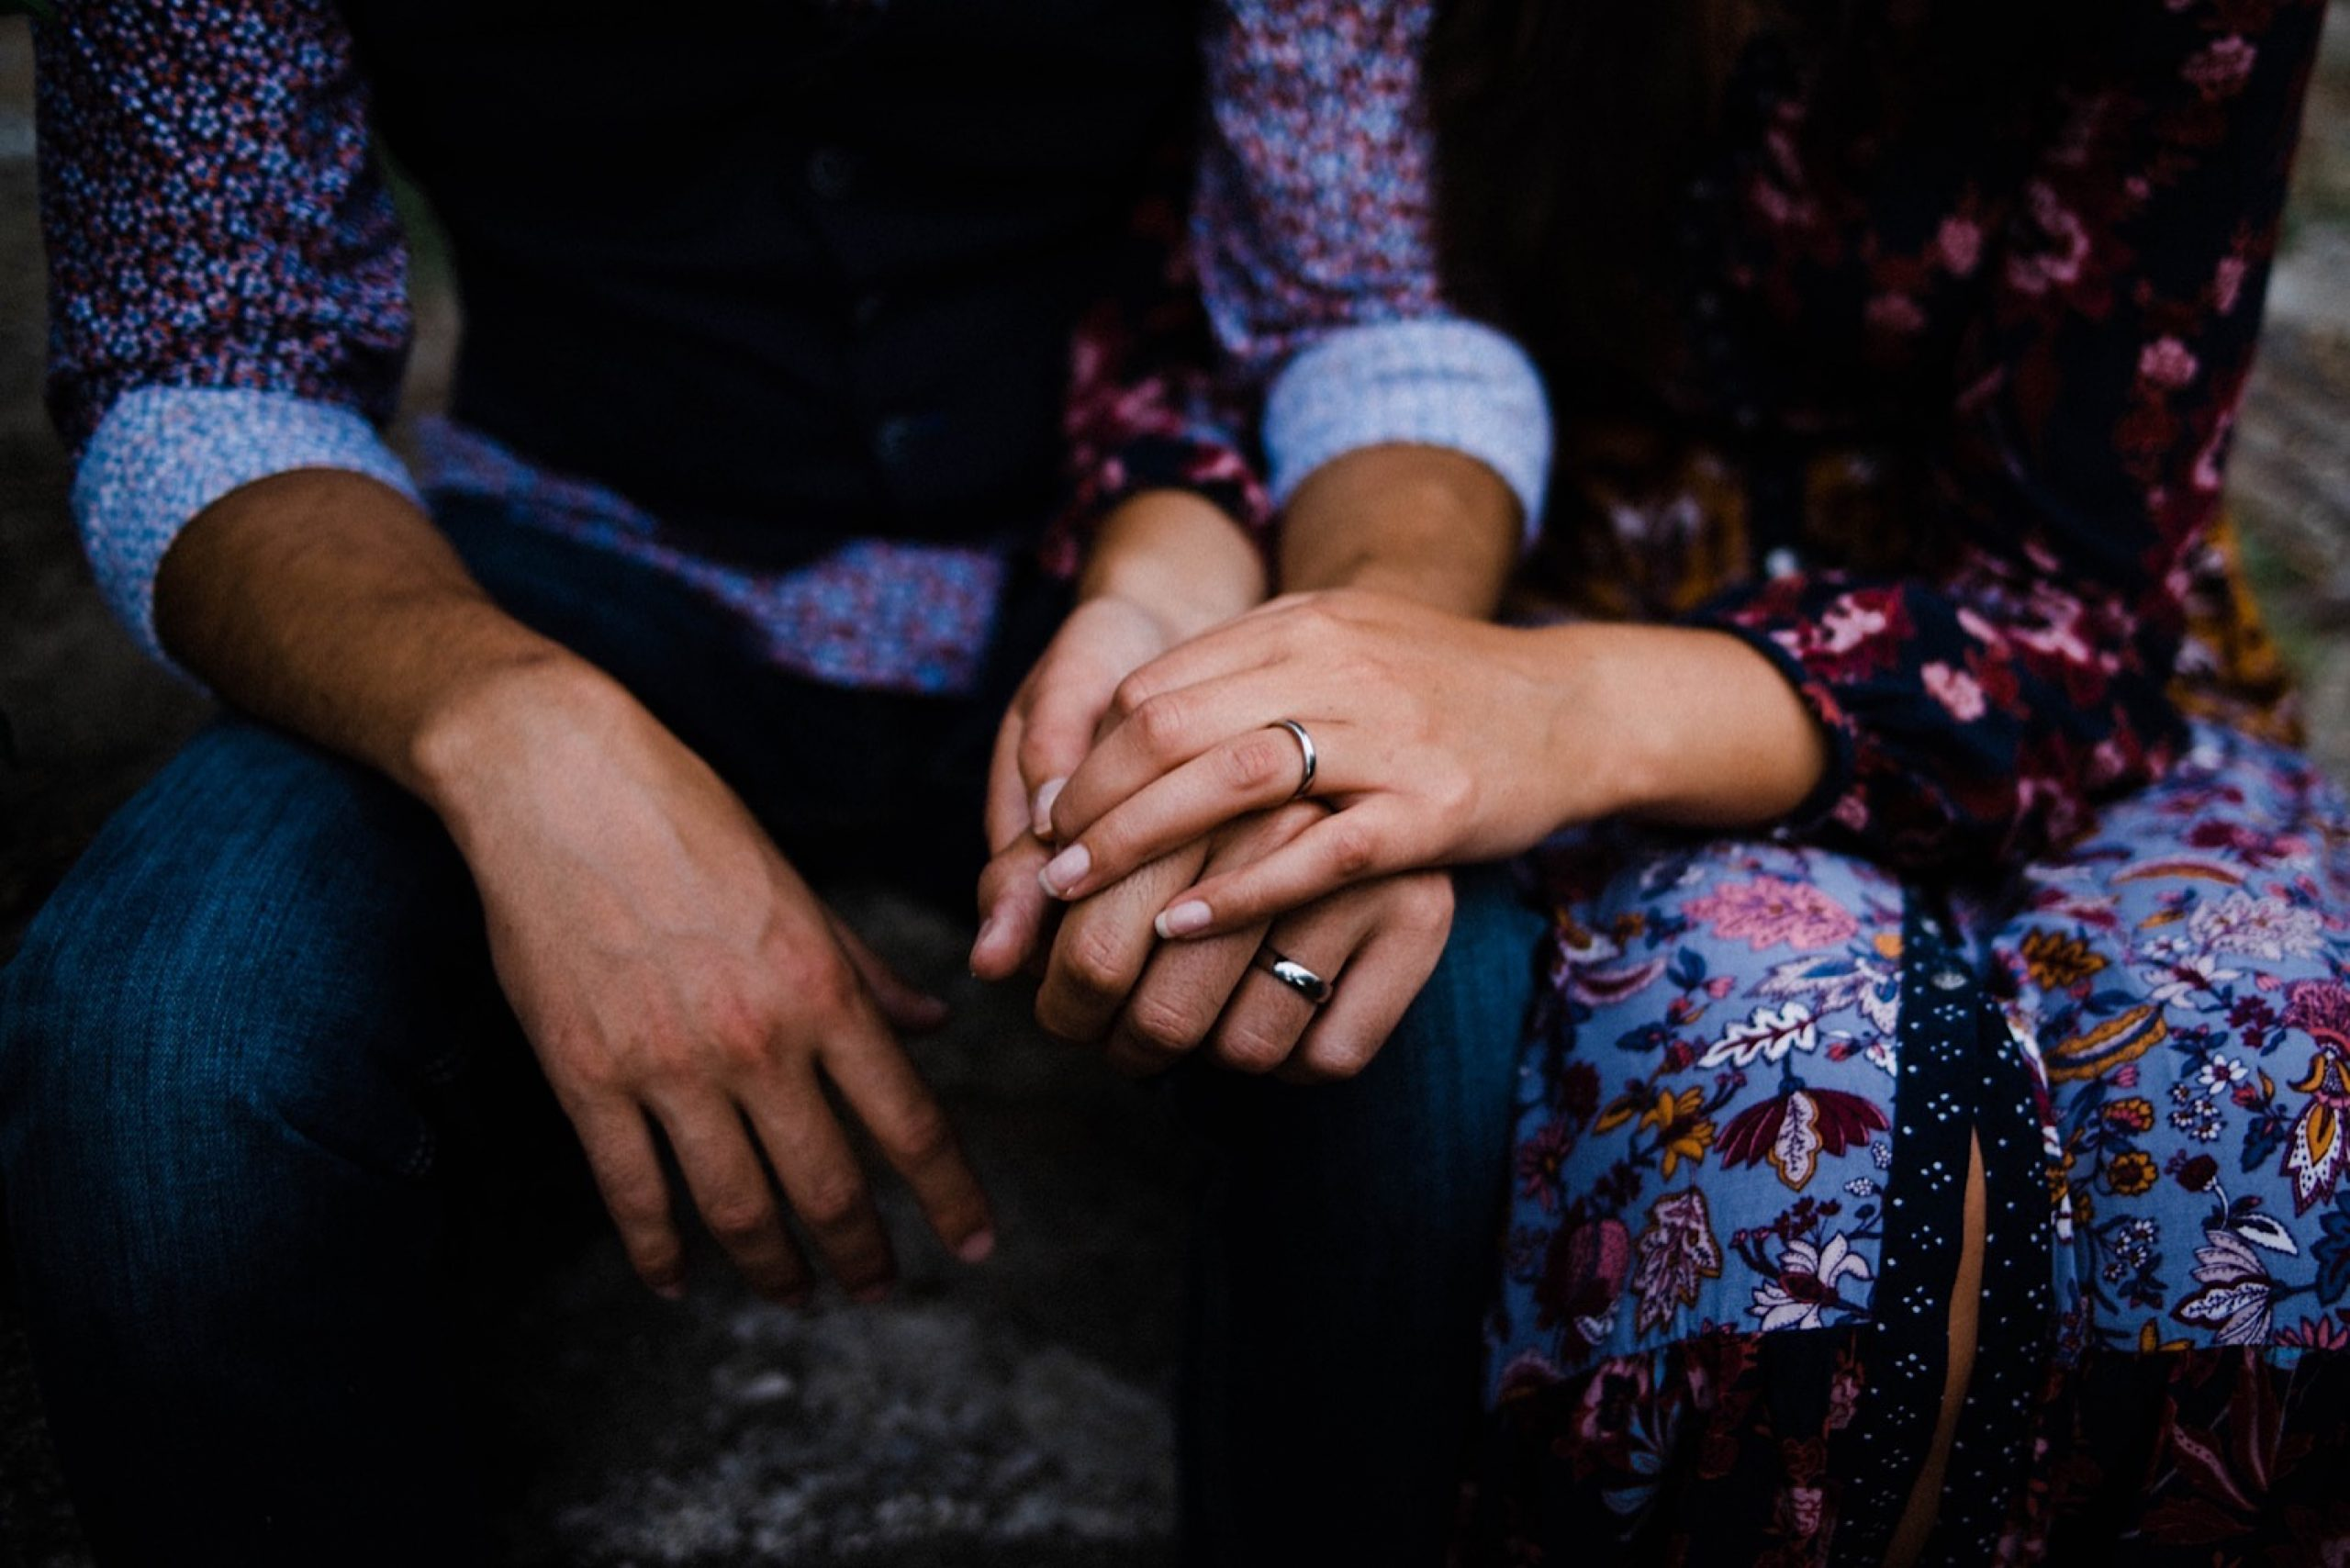 Italian Wedding Photography of a couple sitting down and holding hands. They both wear colourful wedding clothes and the photo showcases their wedding rings.